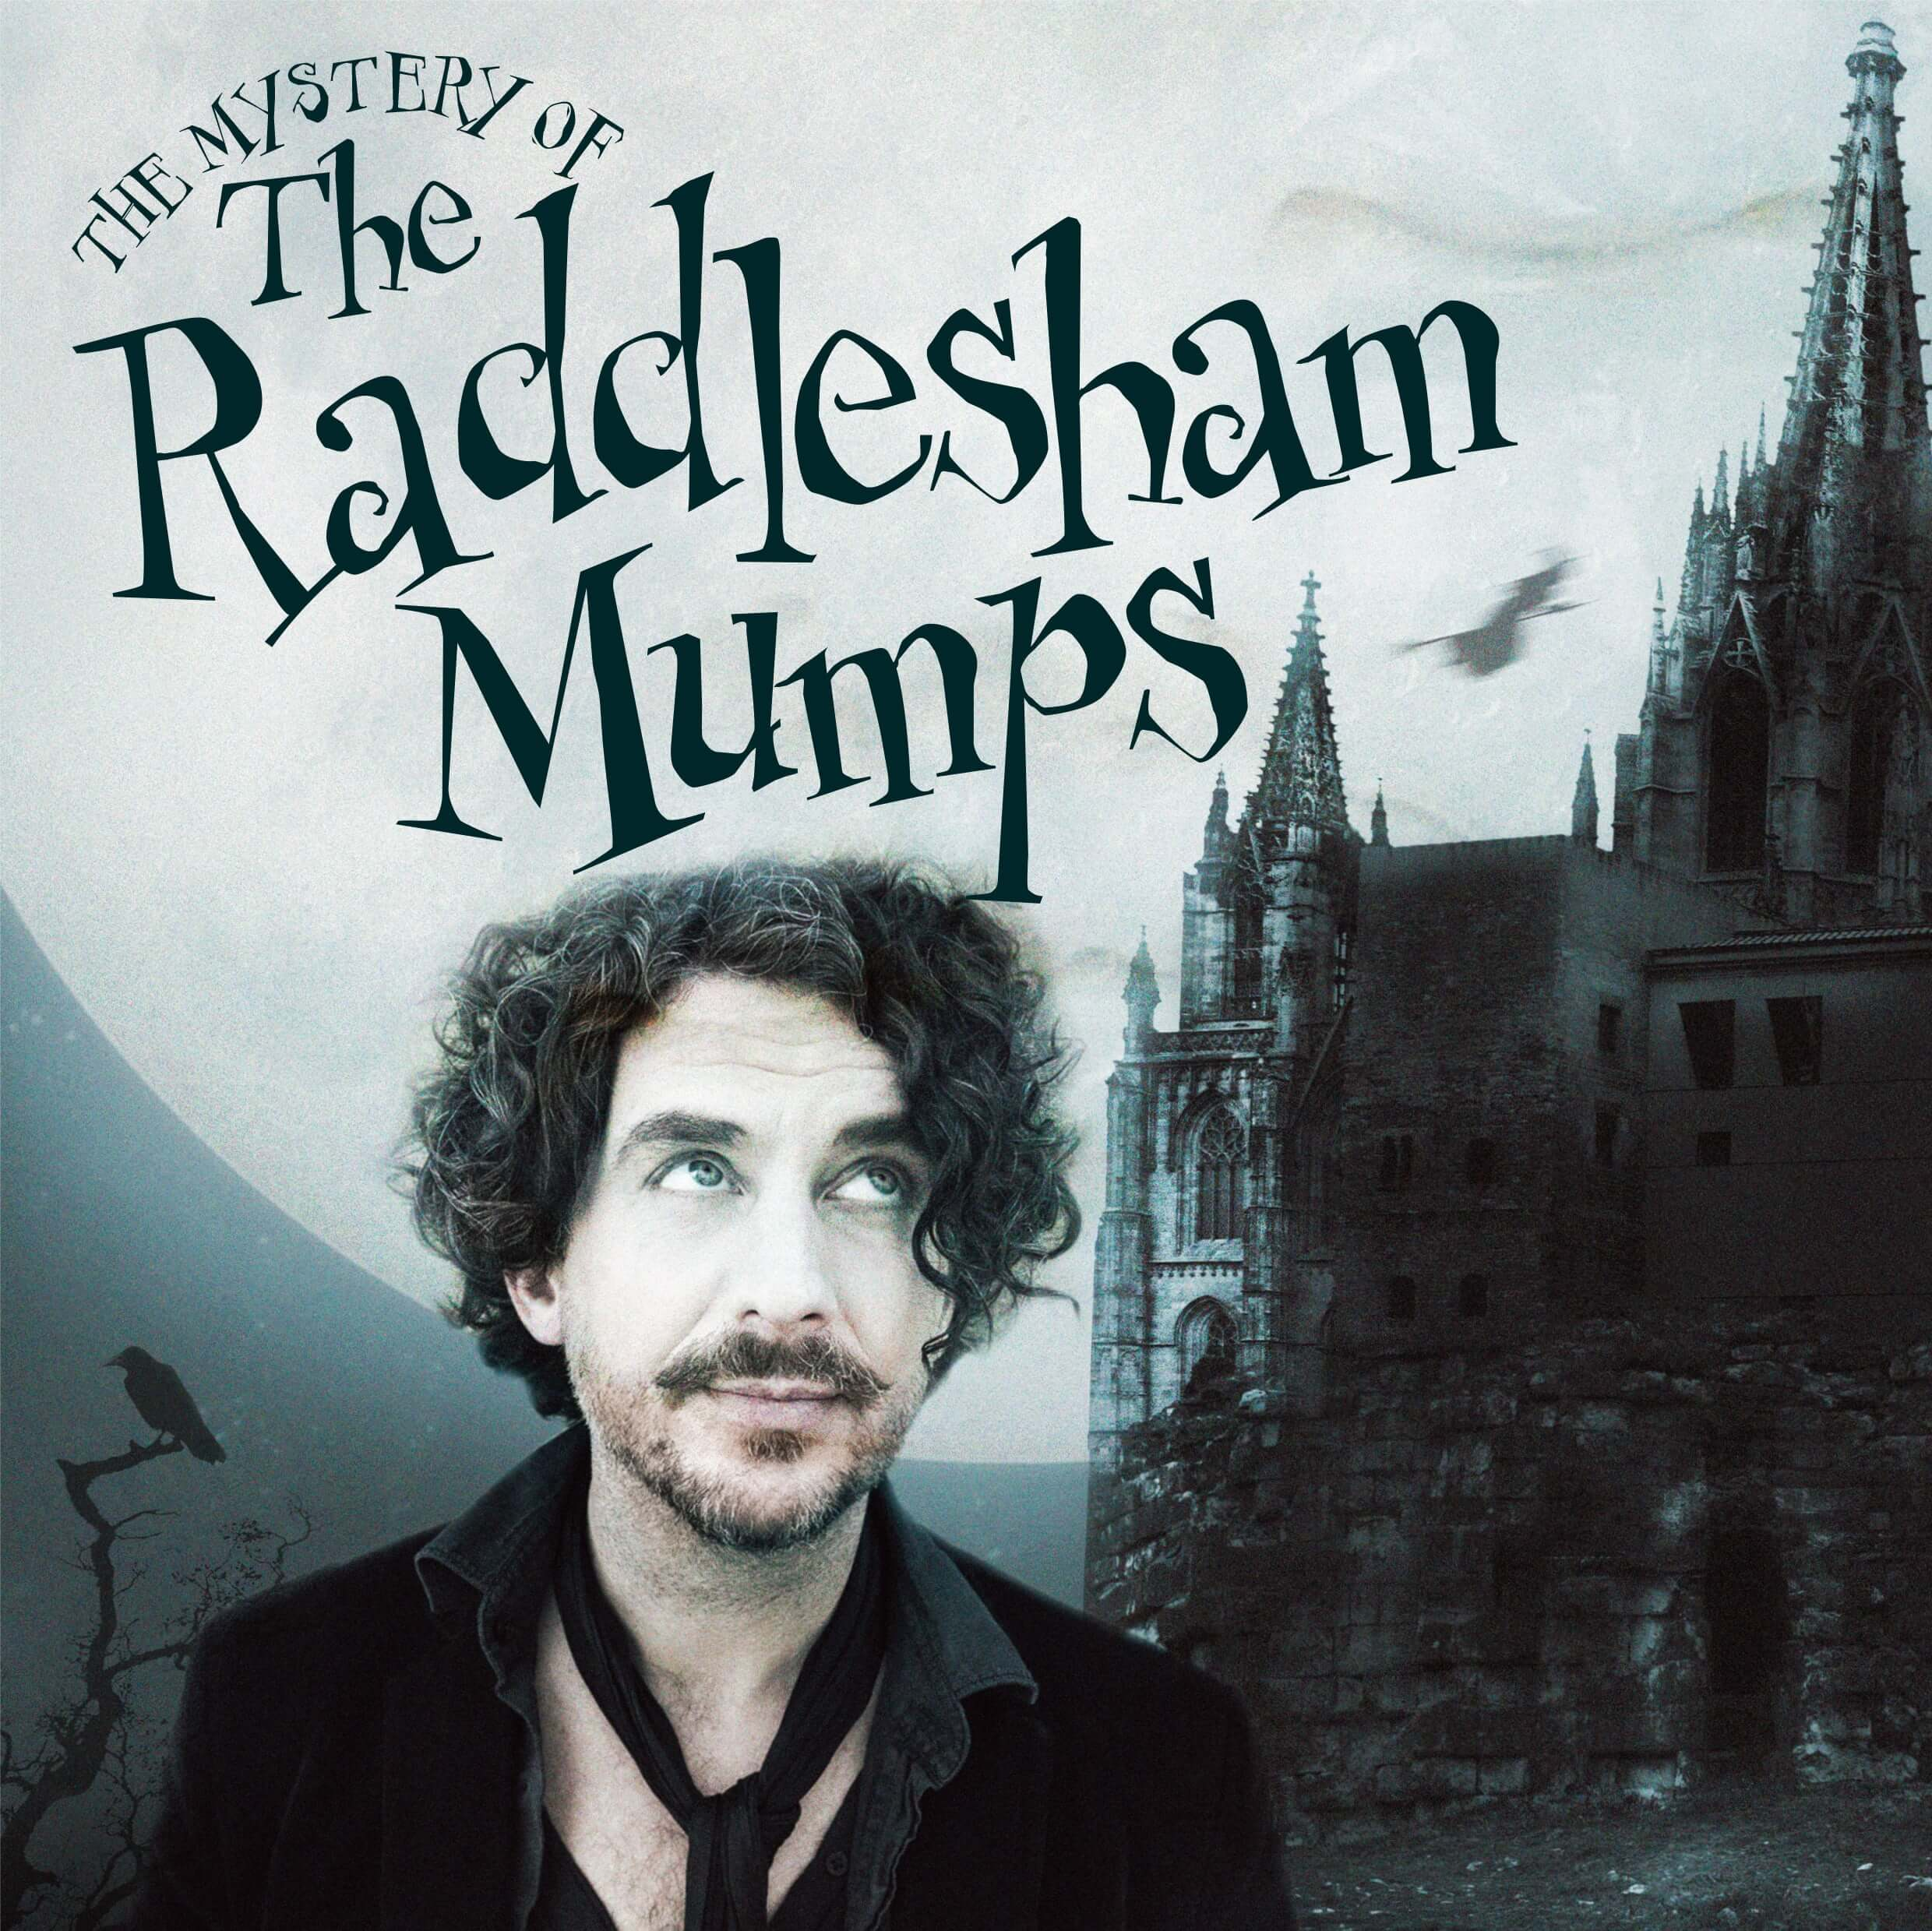 The Mystery Of The Raddlesham Mumps with Murray Lachlan Young